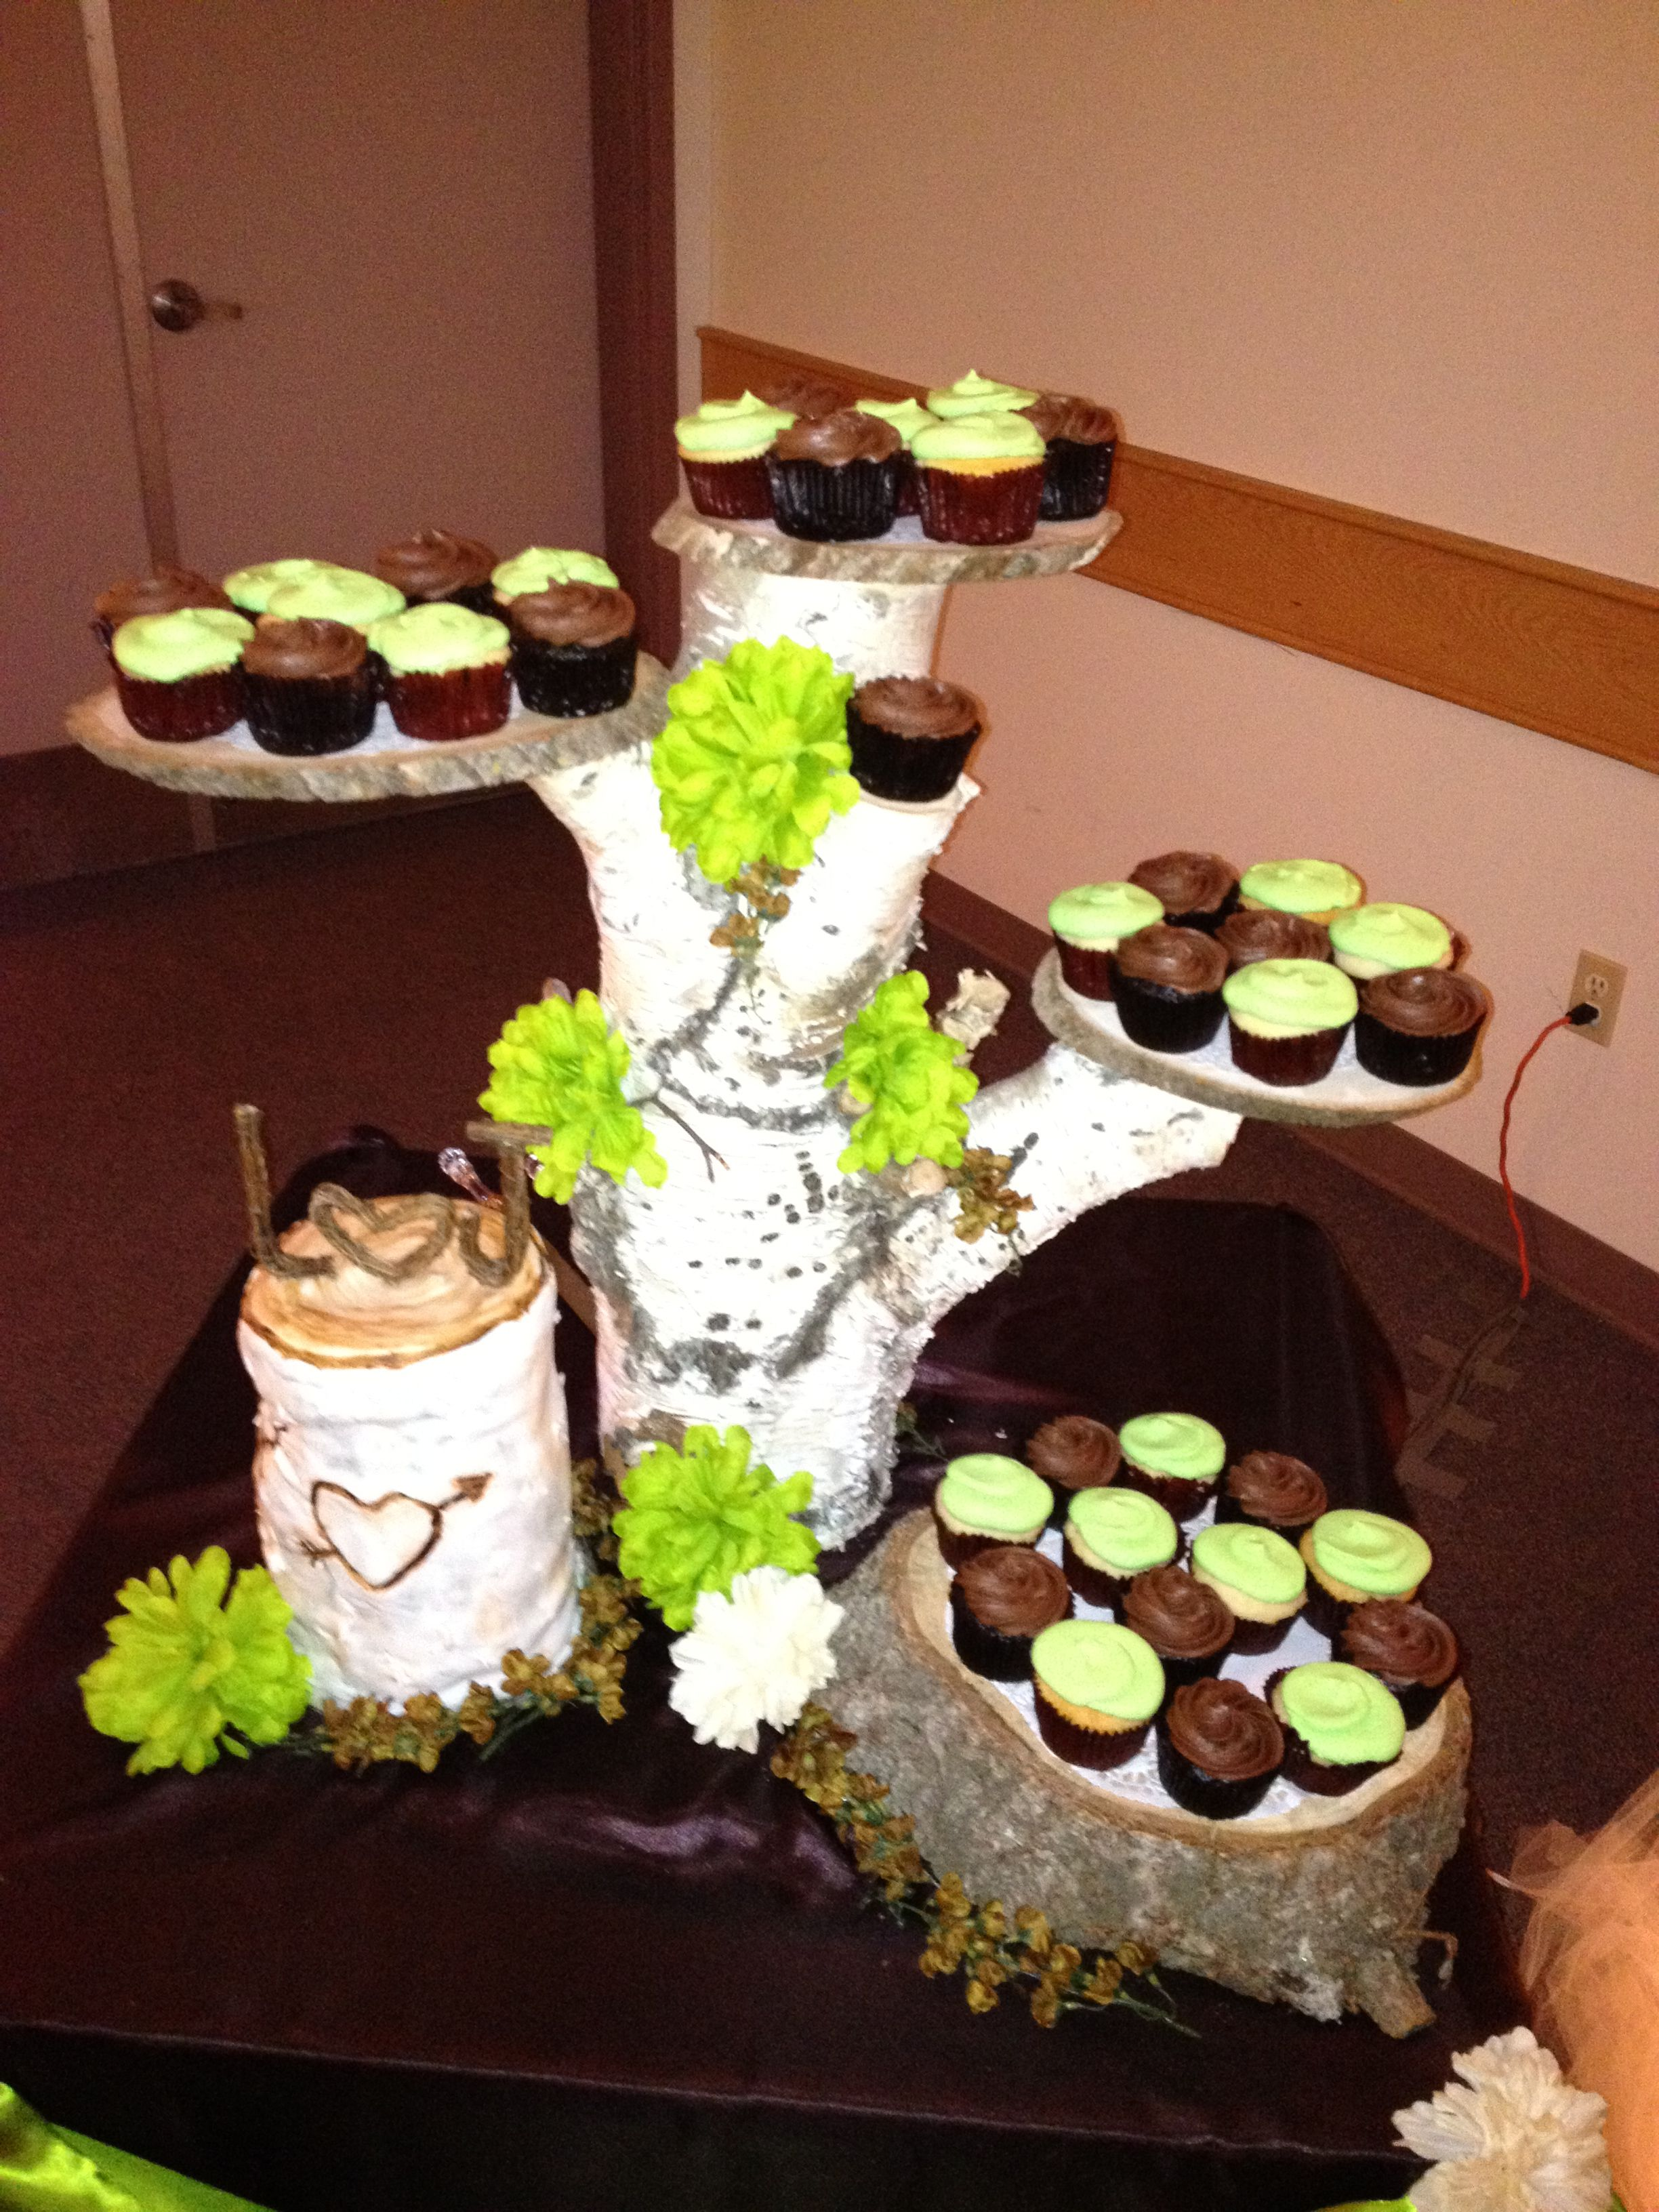 Wooden cake stand w cupcakes. Plus the log w heart design